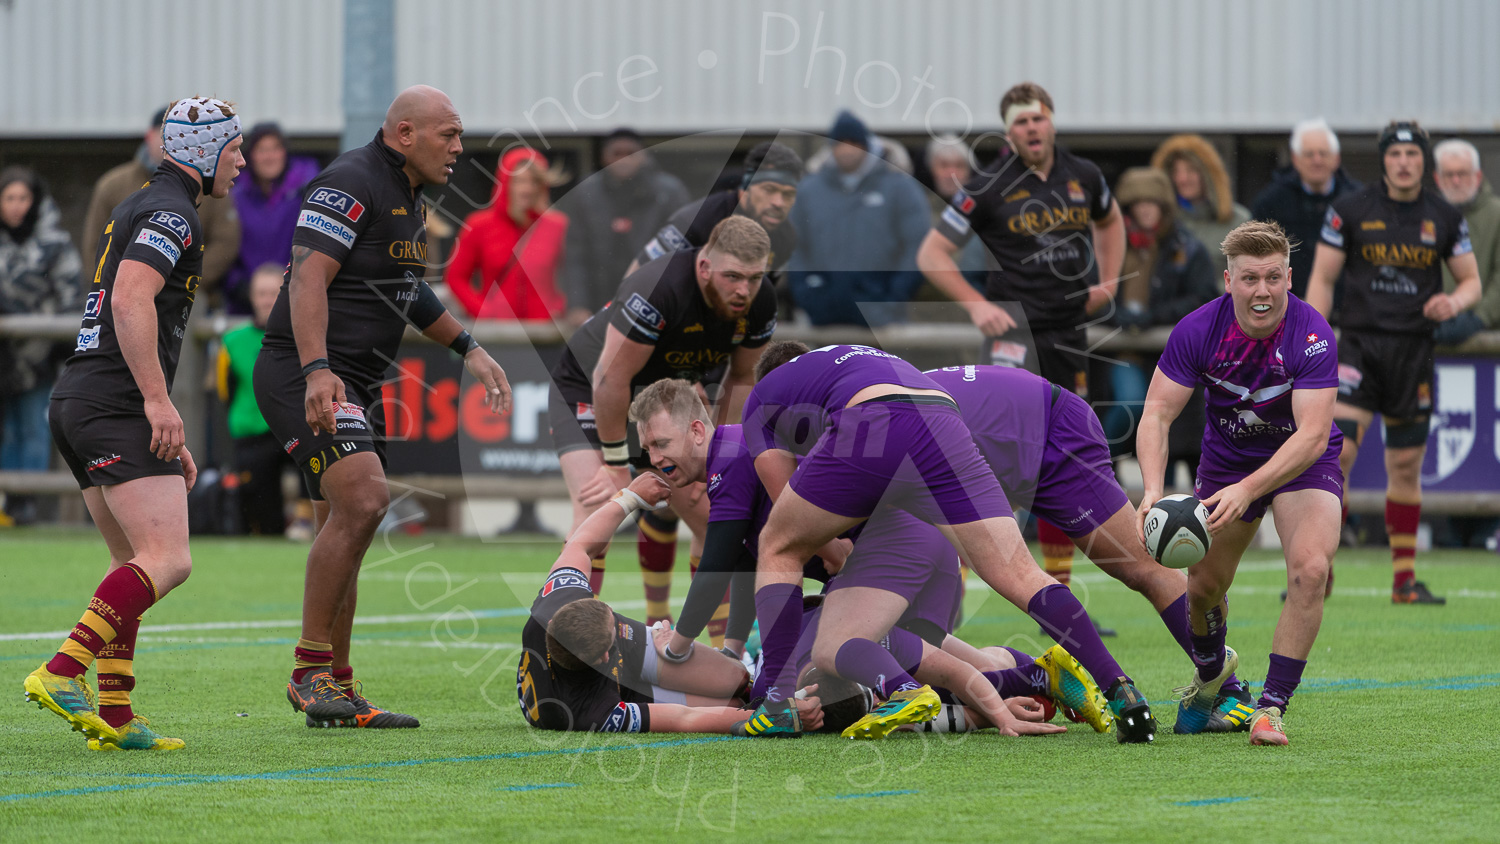 20190427 Loughborough vs Ampthill 1st XV #6594